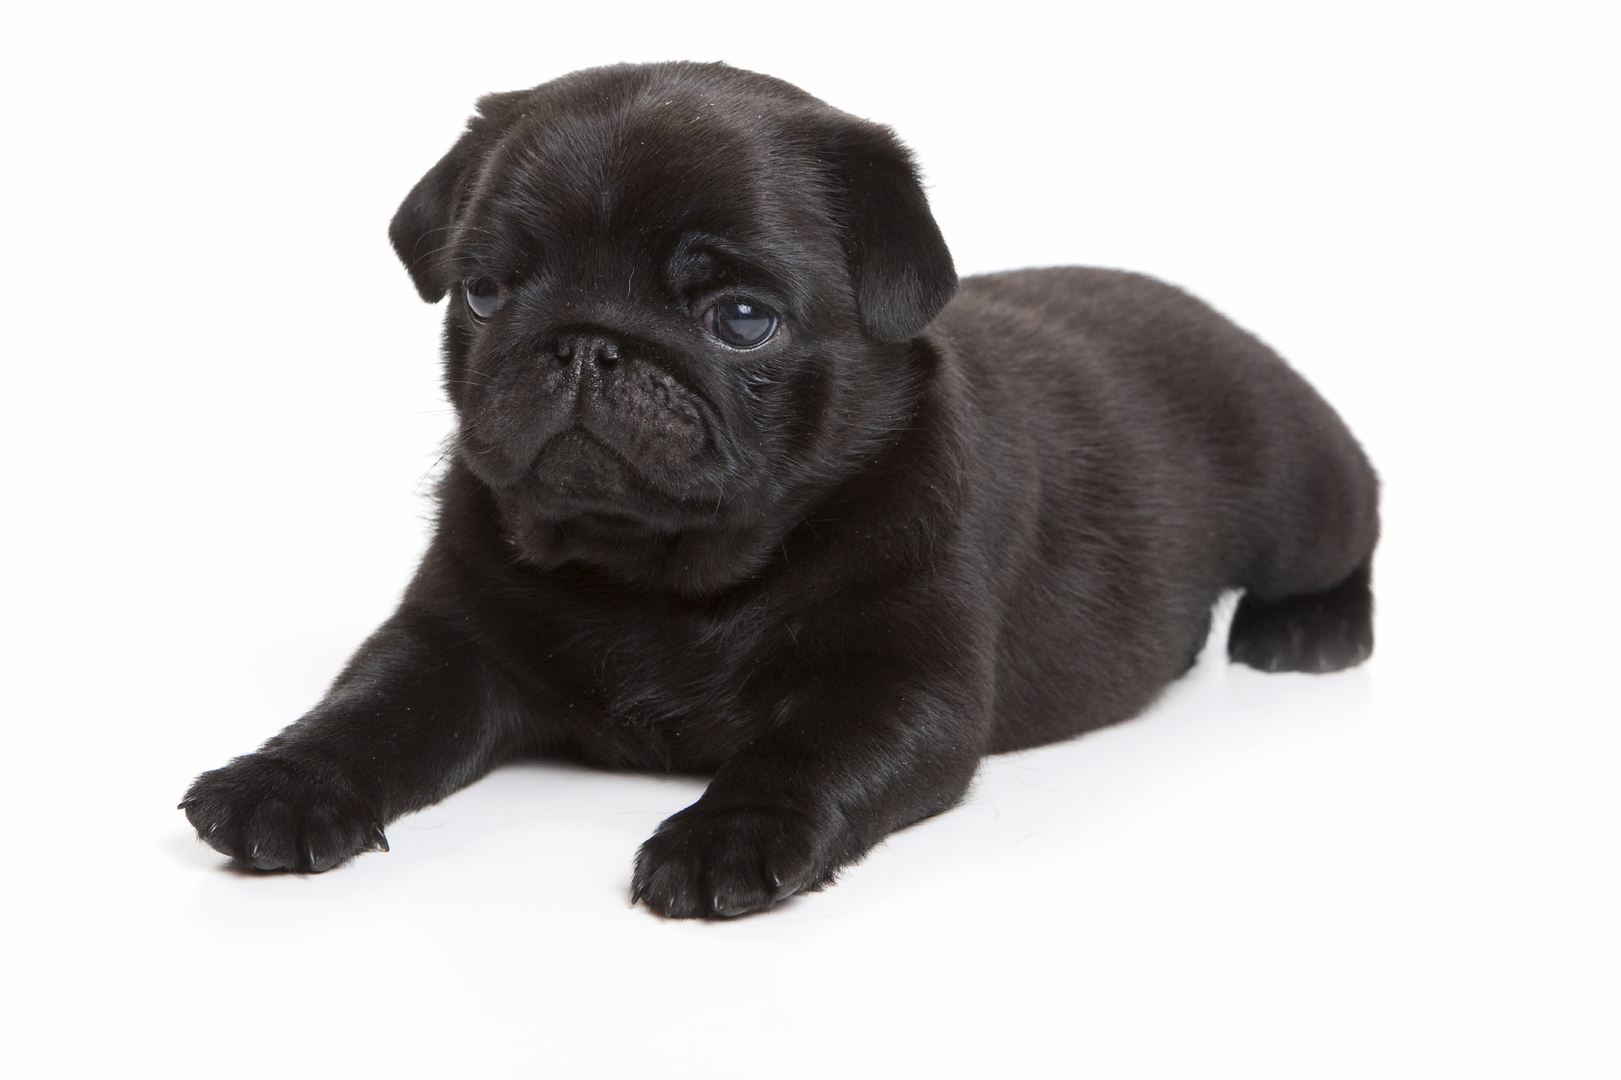 Lone Star Pug Tails Pug Puppies For Sale in Texas